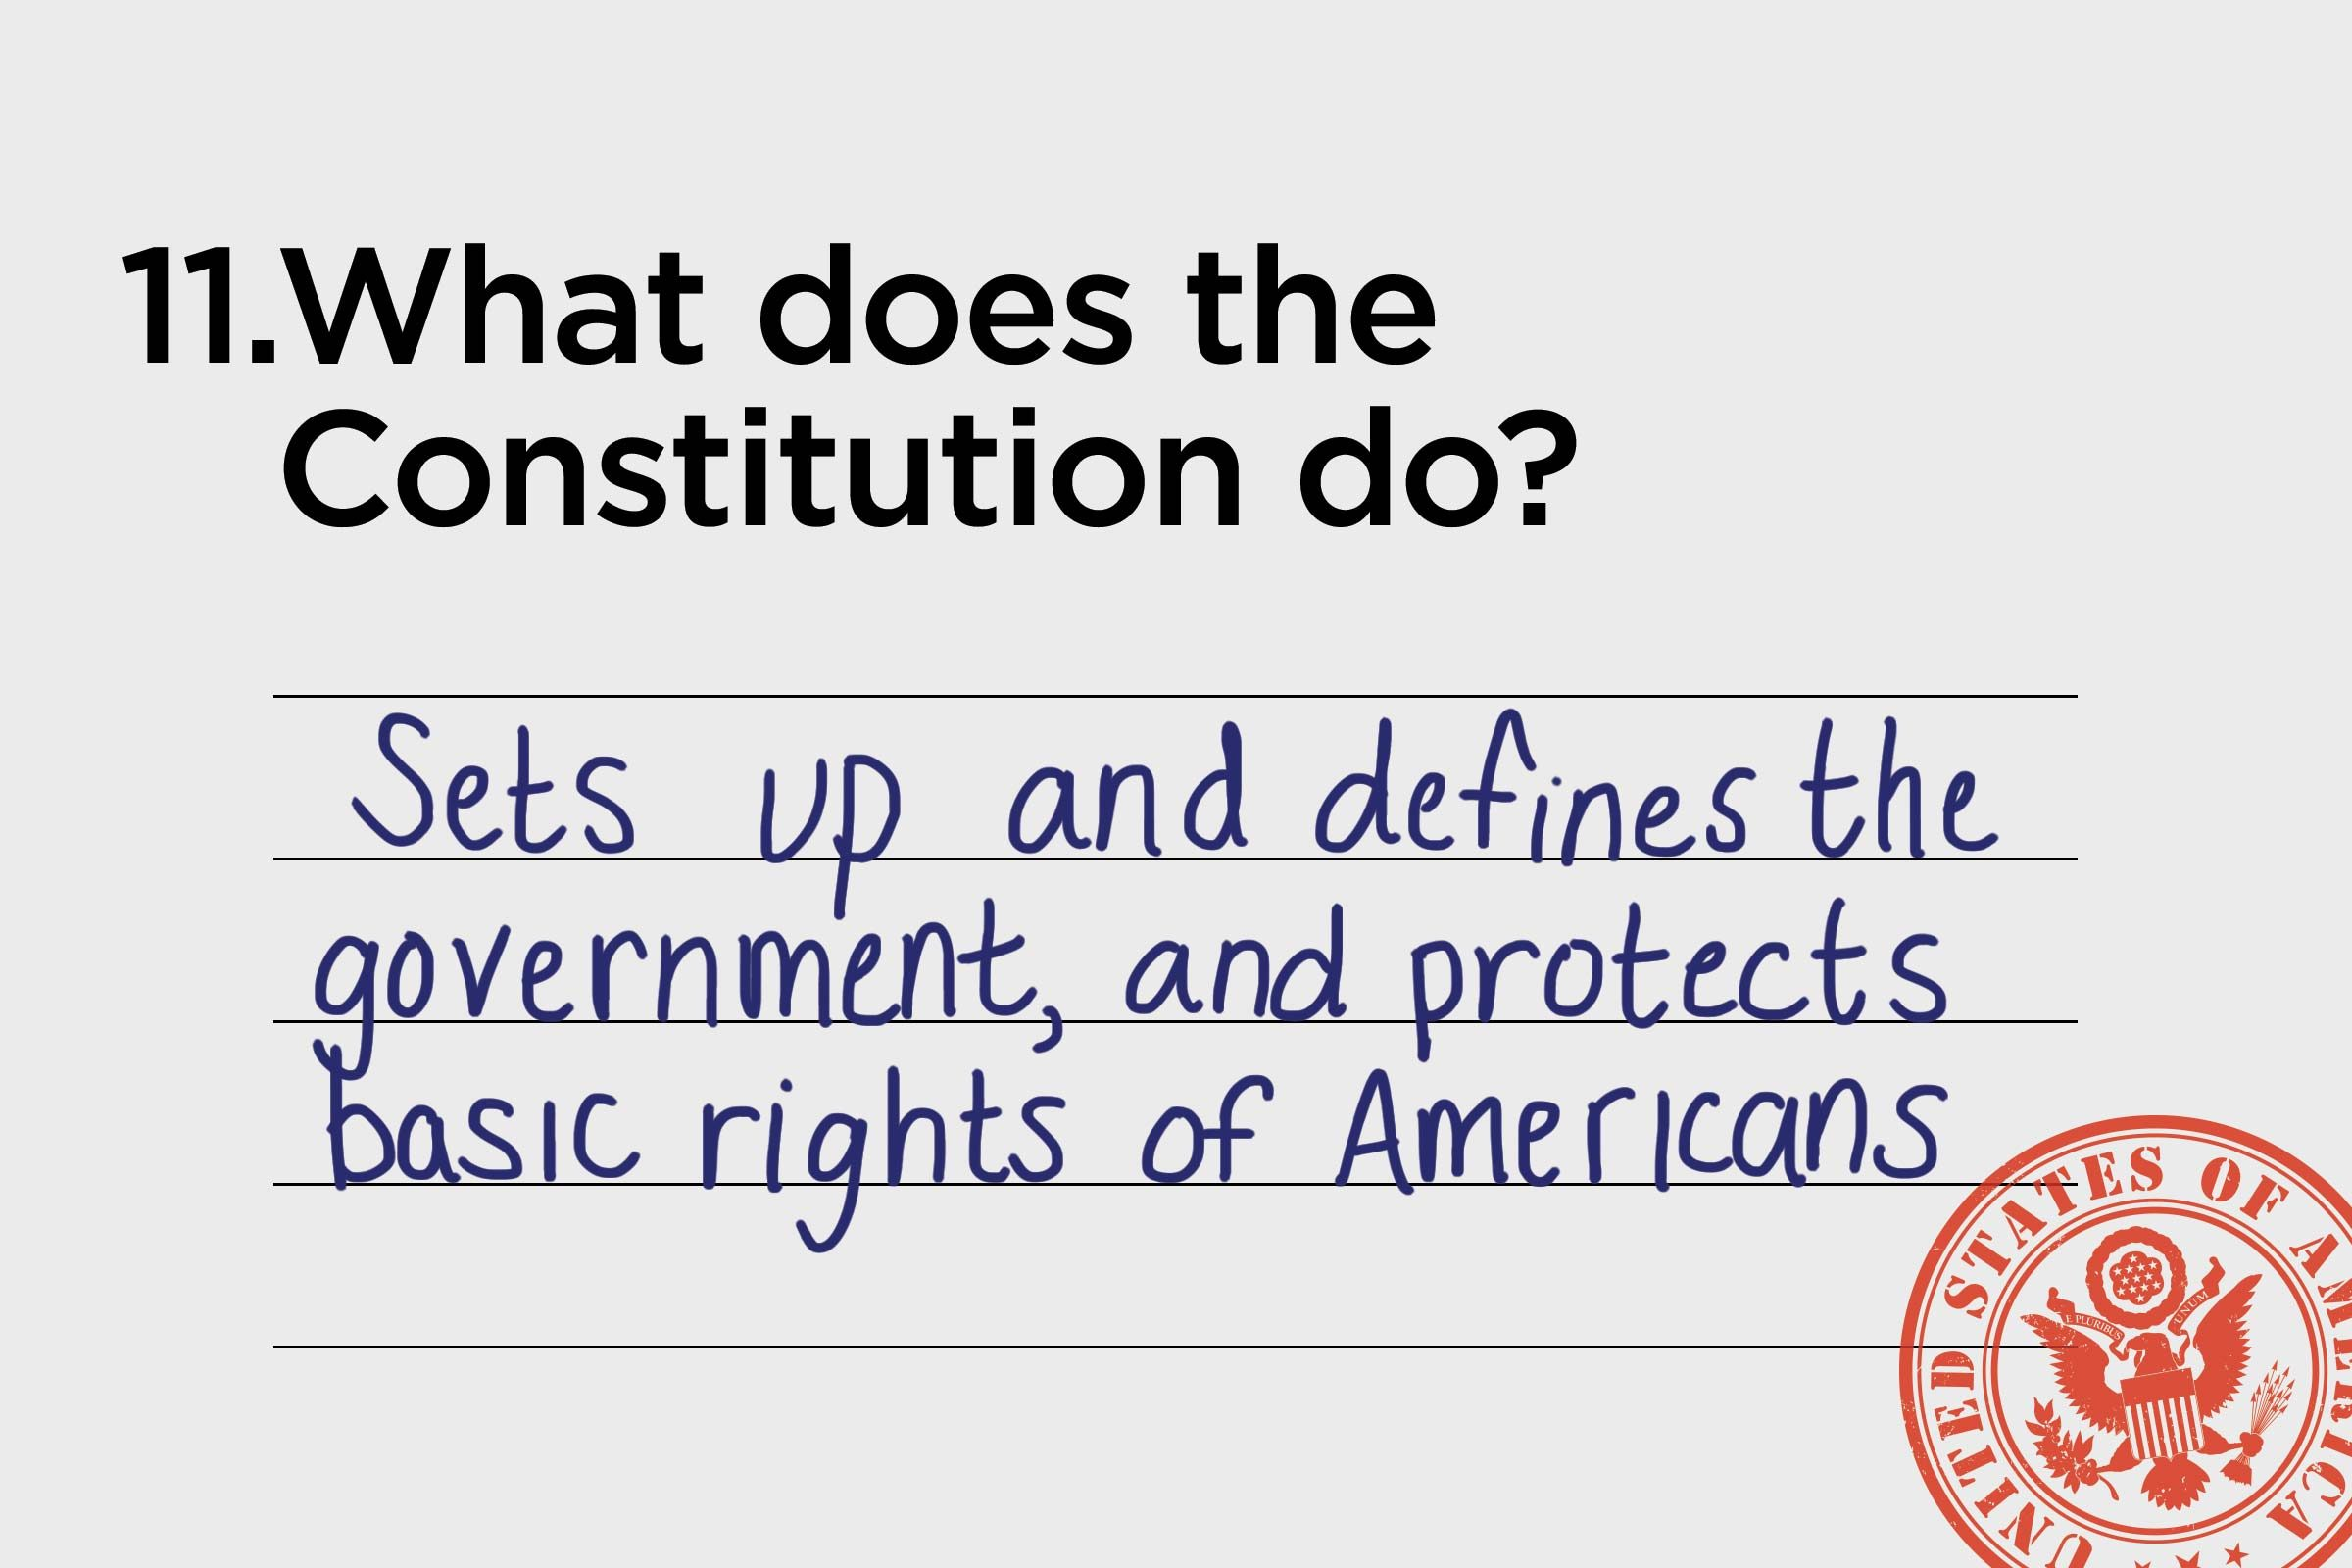 sets up and defines the government and protects the basic rights of americans